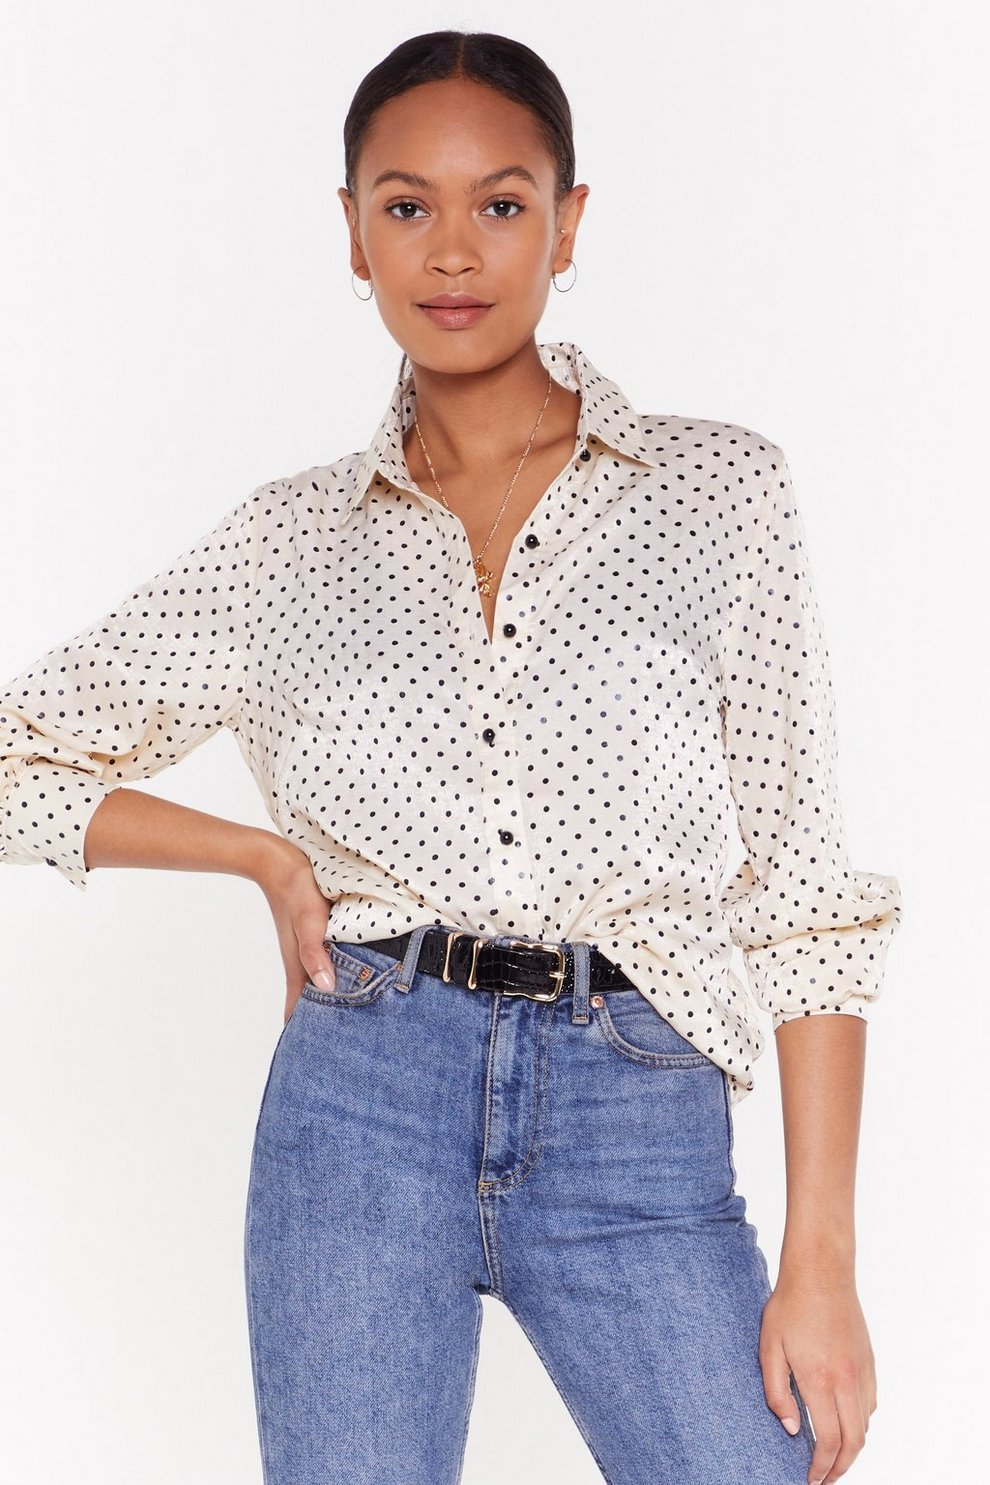 863c78c8c812e Still Dot Time Polka Dot Satin Shirt